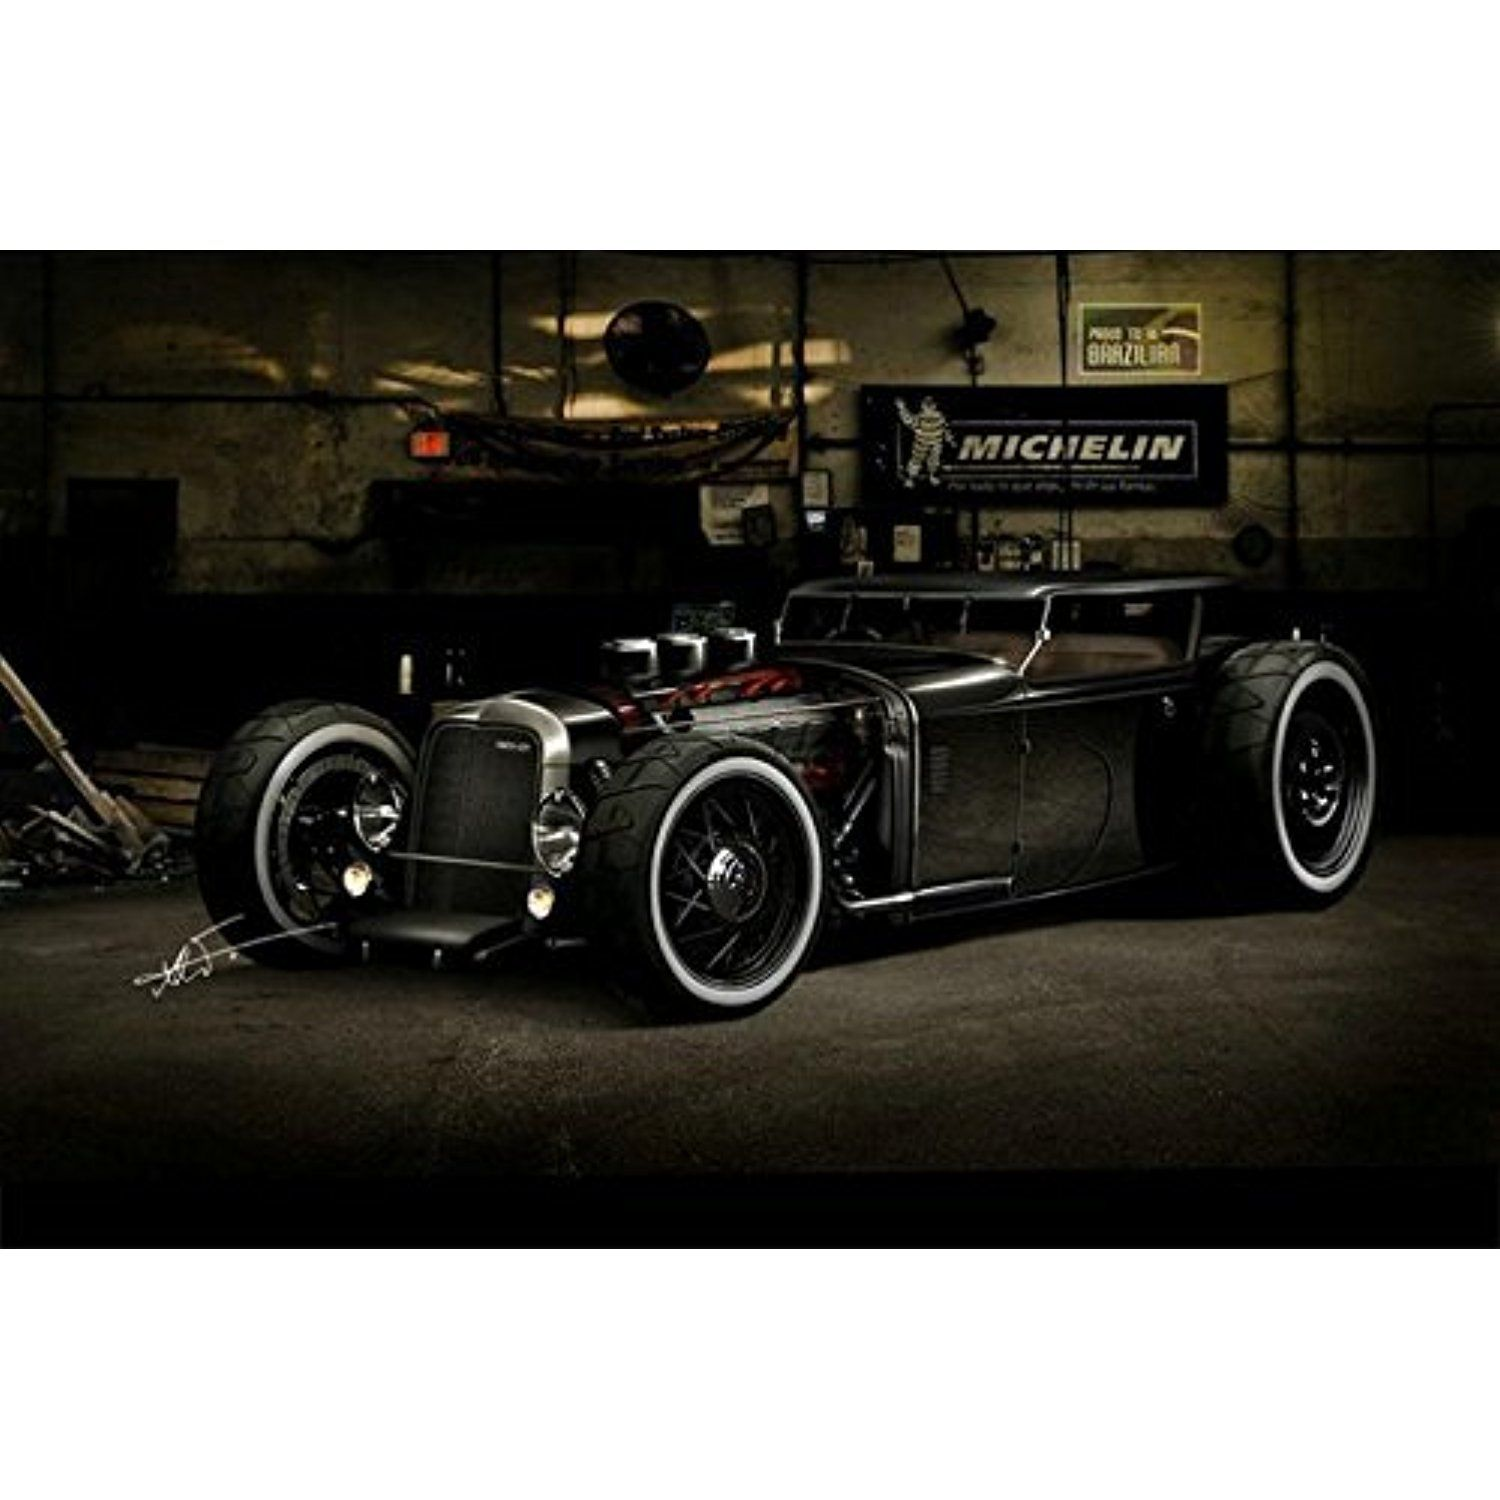 Lawrence Painting Hot Rod Car Wall Posters Hd Big Modern Home Living